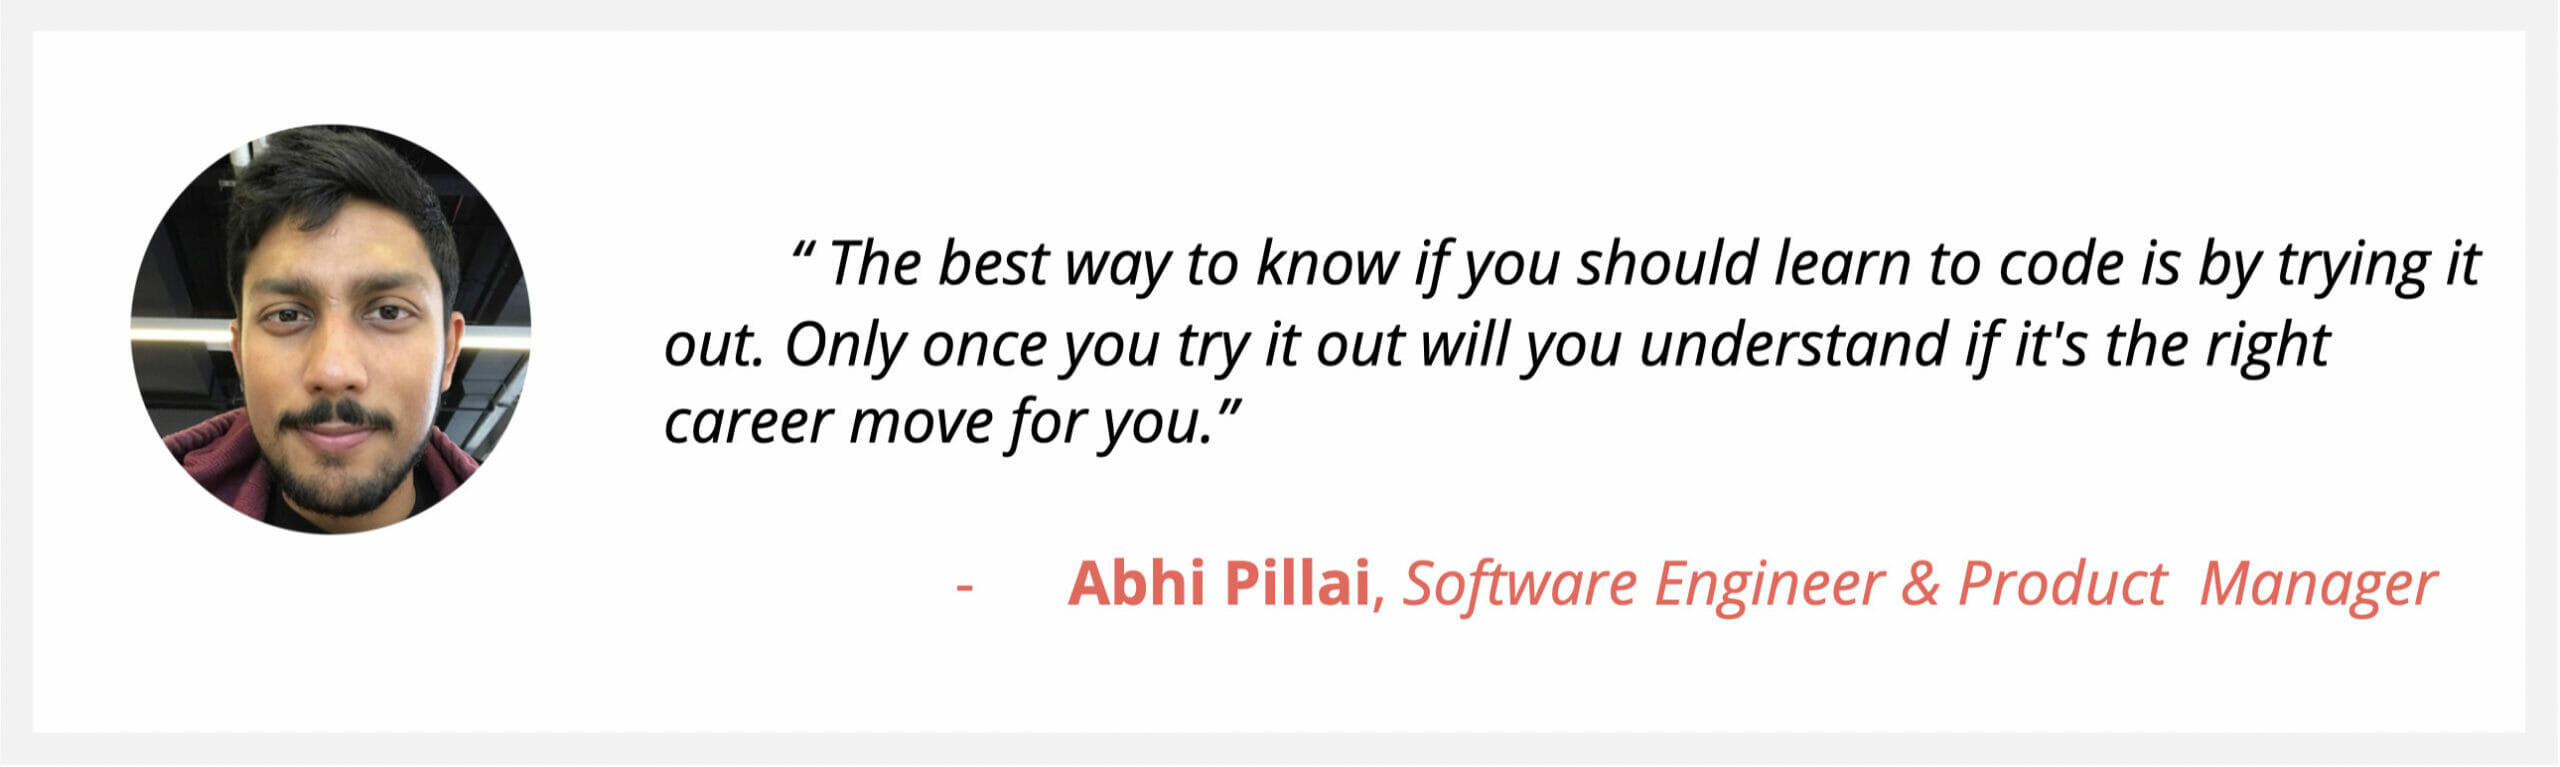 """Software Engineer & PM Abhi Pillai, says """"The best way to know if you should learn to code is by trying it out. Only once you try it out will you understand if it's the right career move for you."""""""